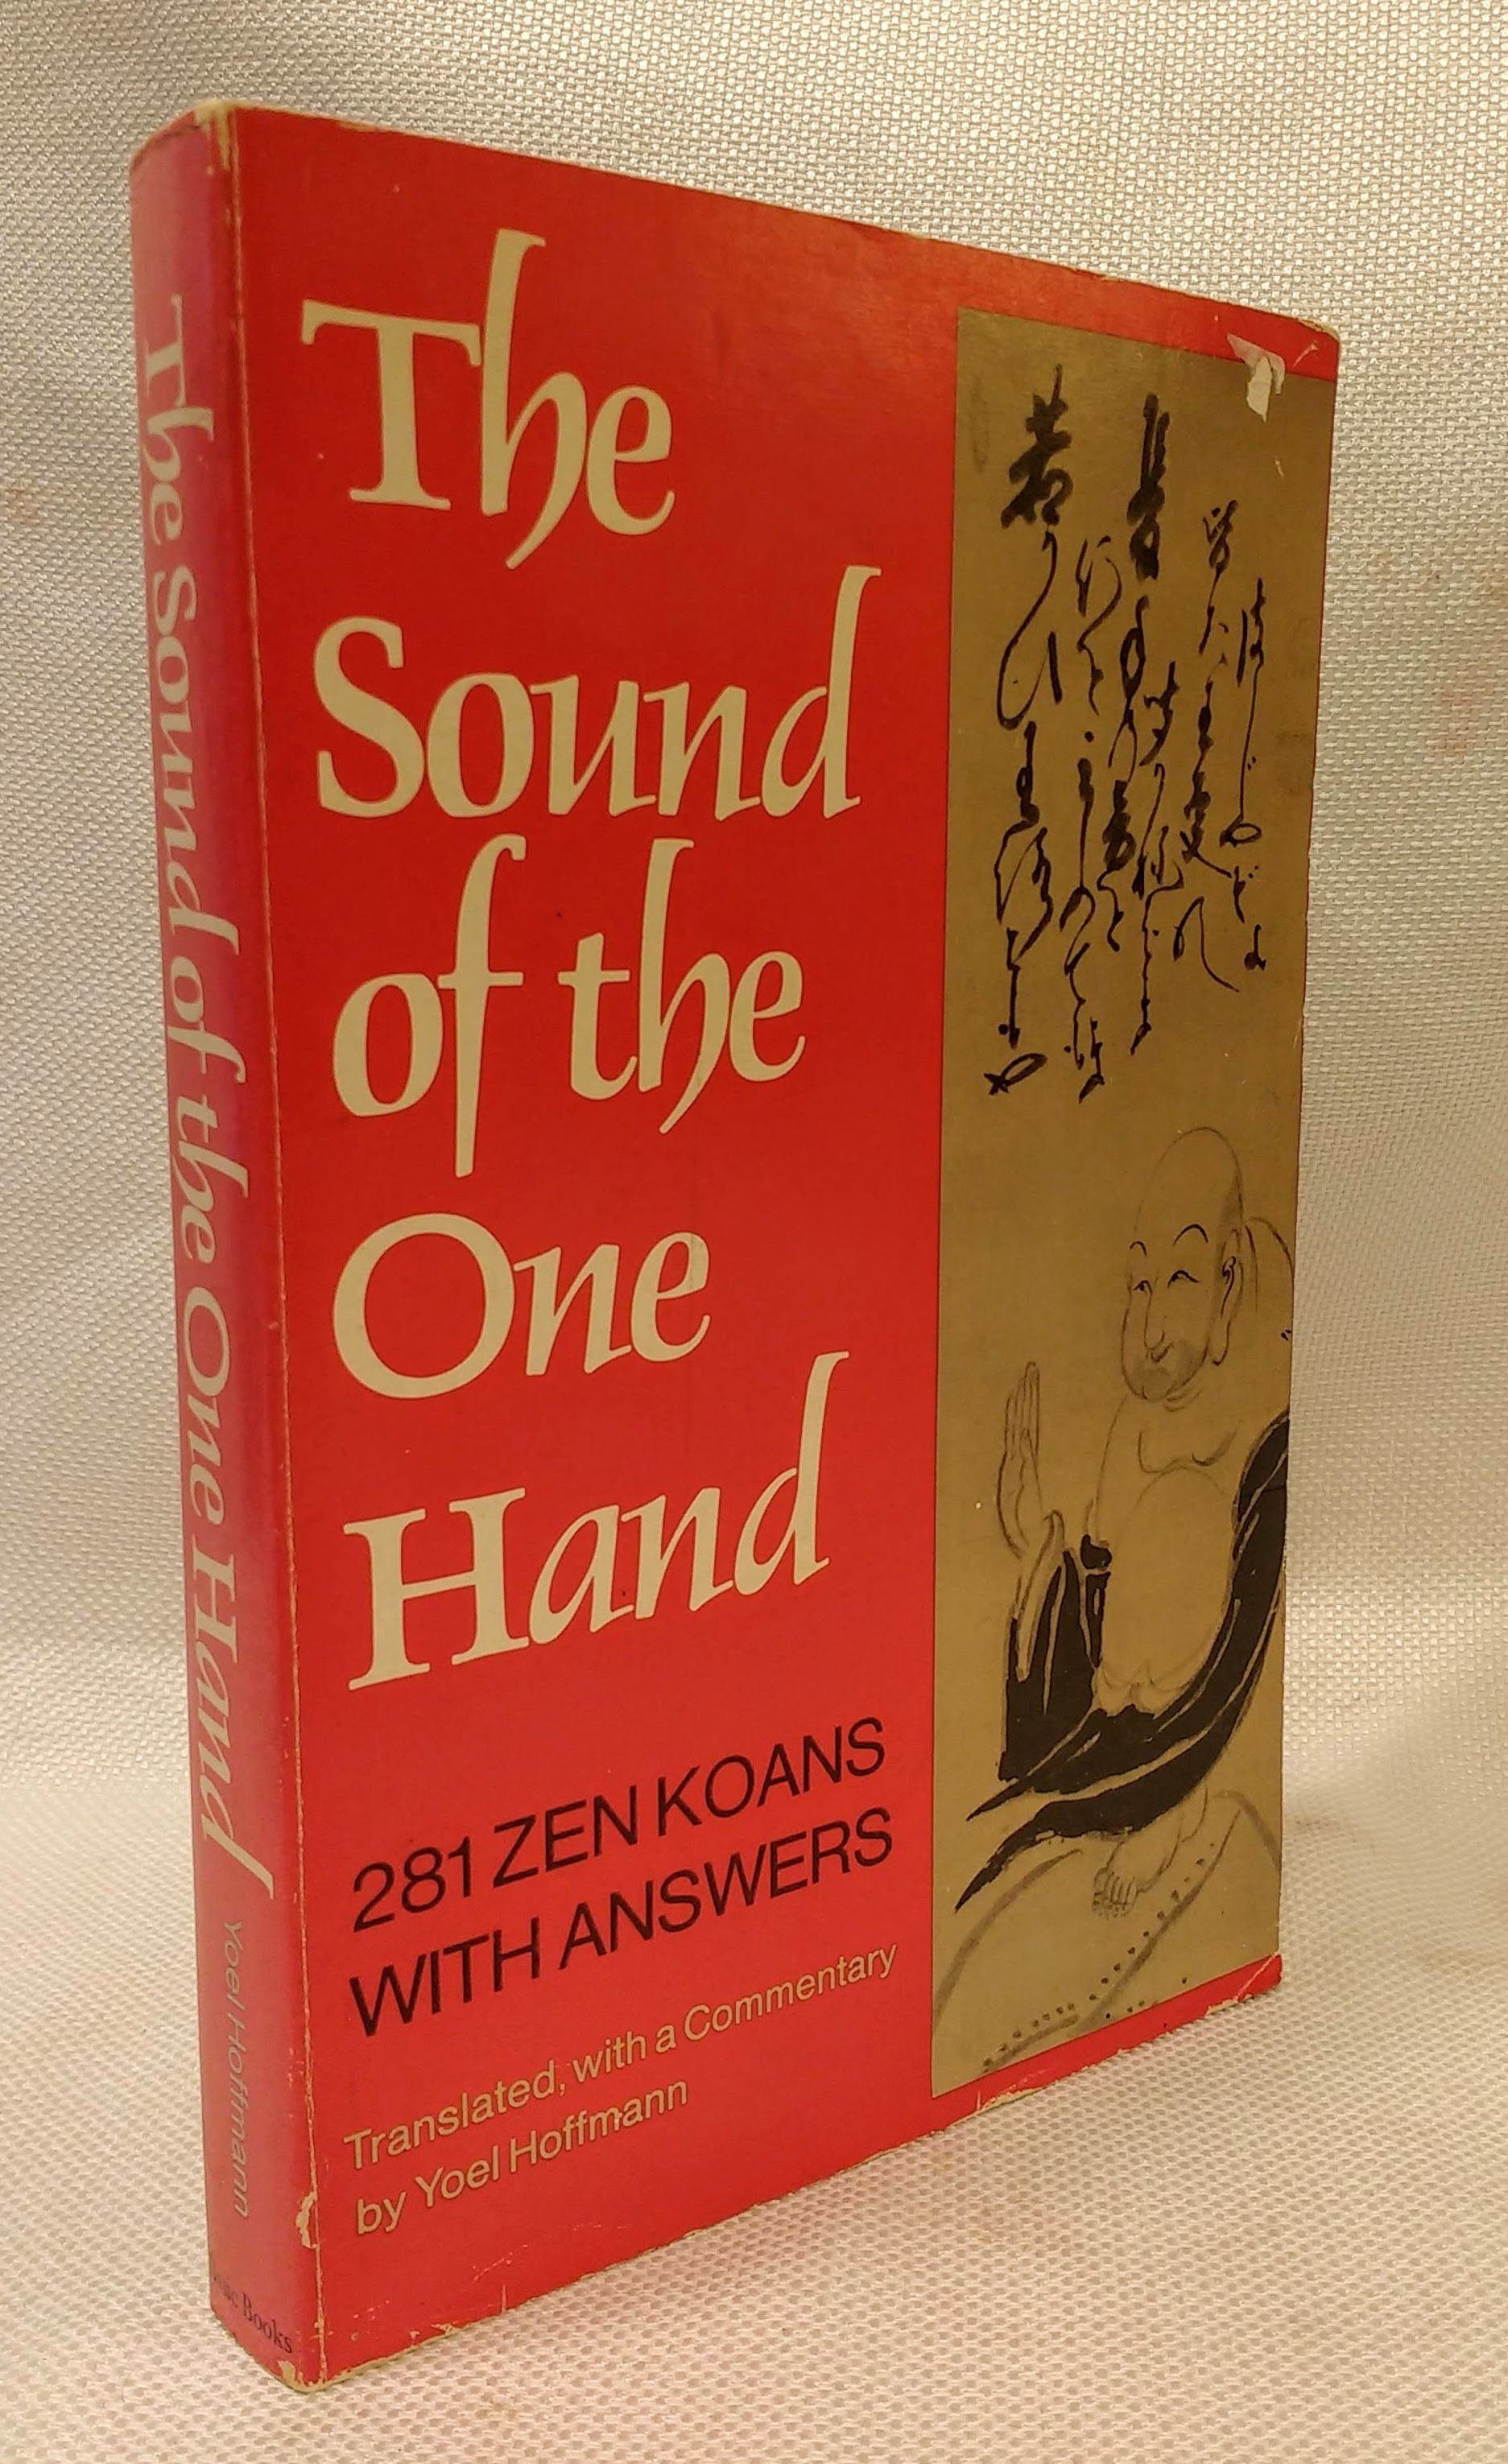 The Sound of the One Hand: 281 Zen Koans with Answers, Hoffmann, Yoel [Translator]